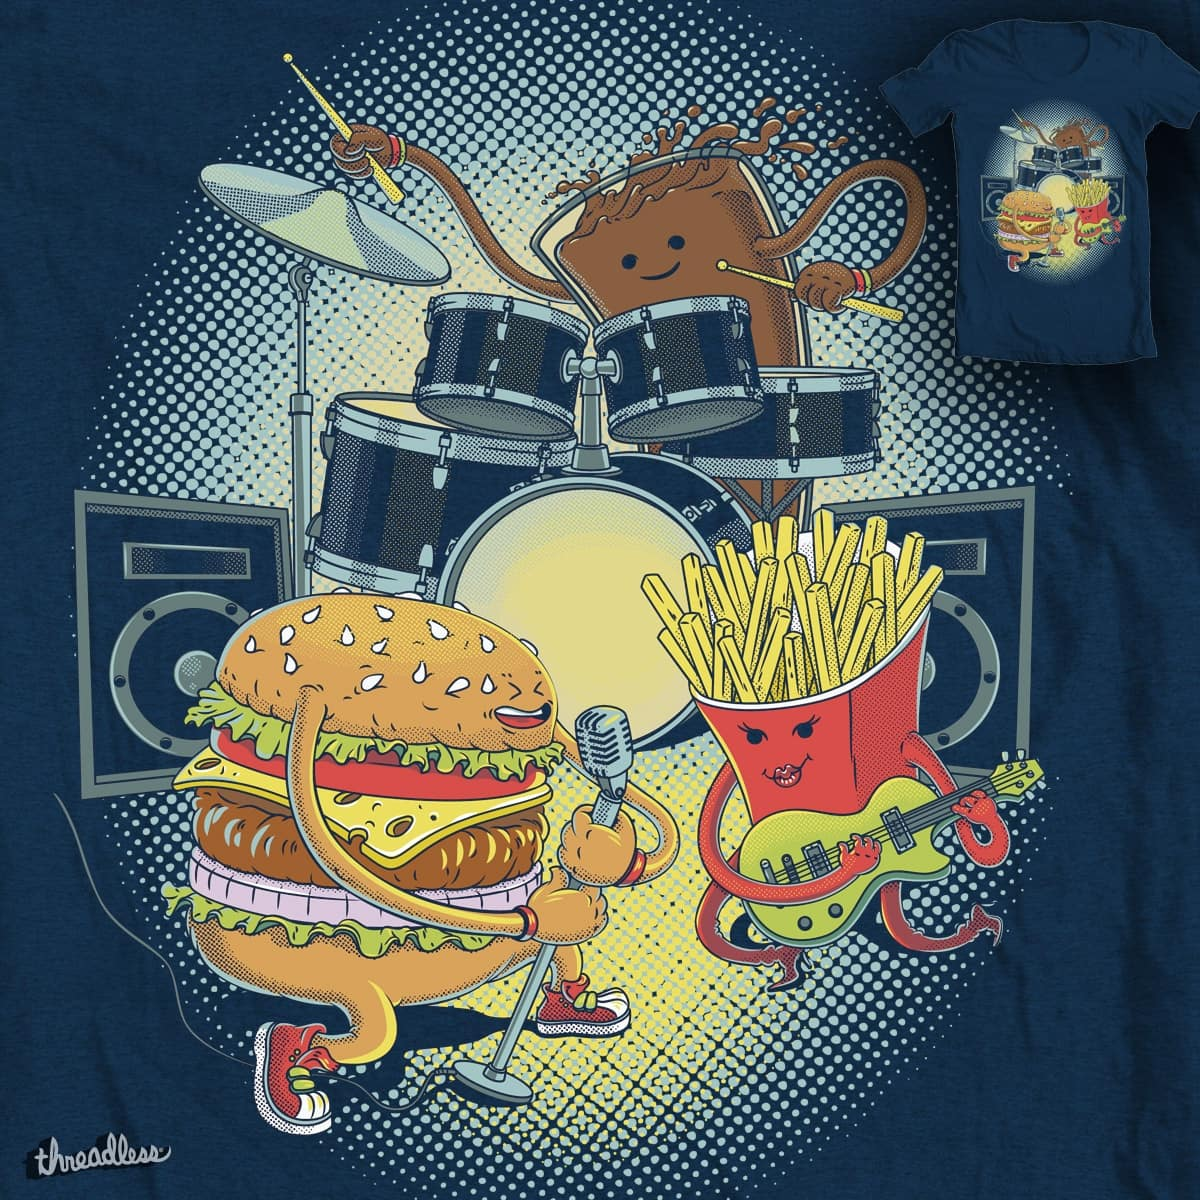 burger song by Ircadelik on Threadless